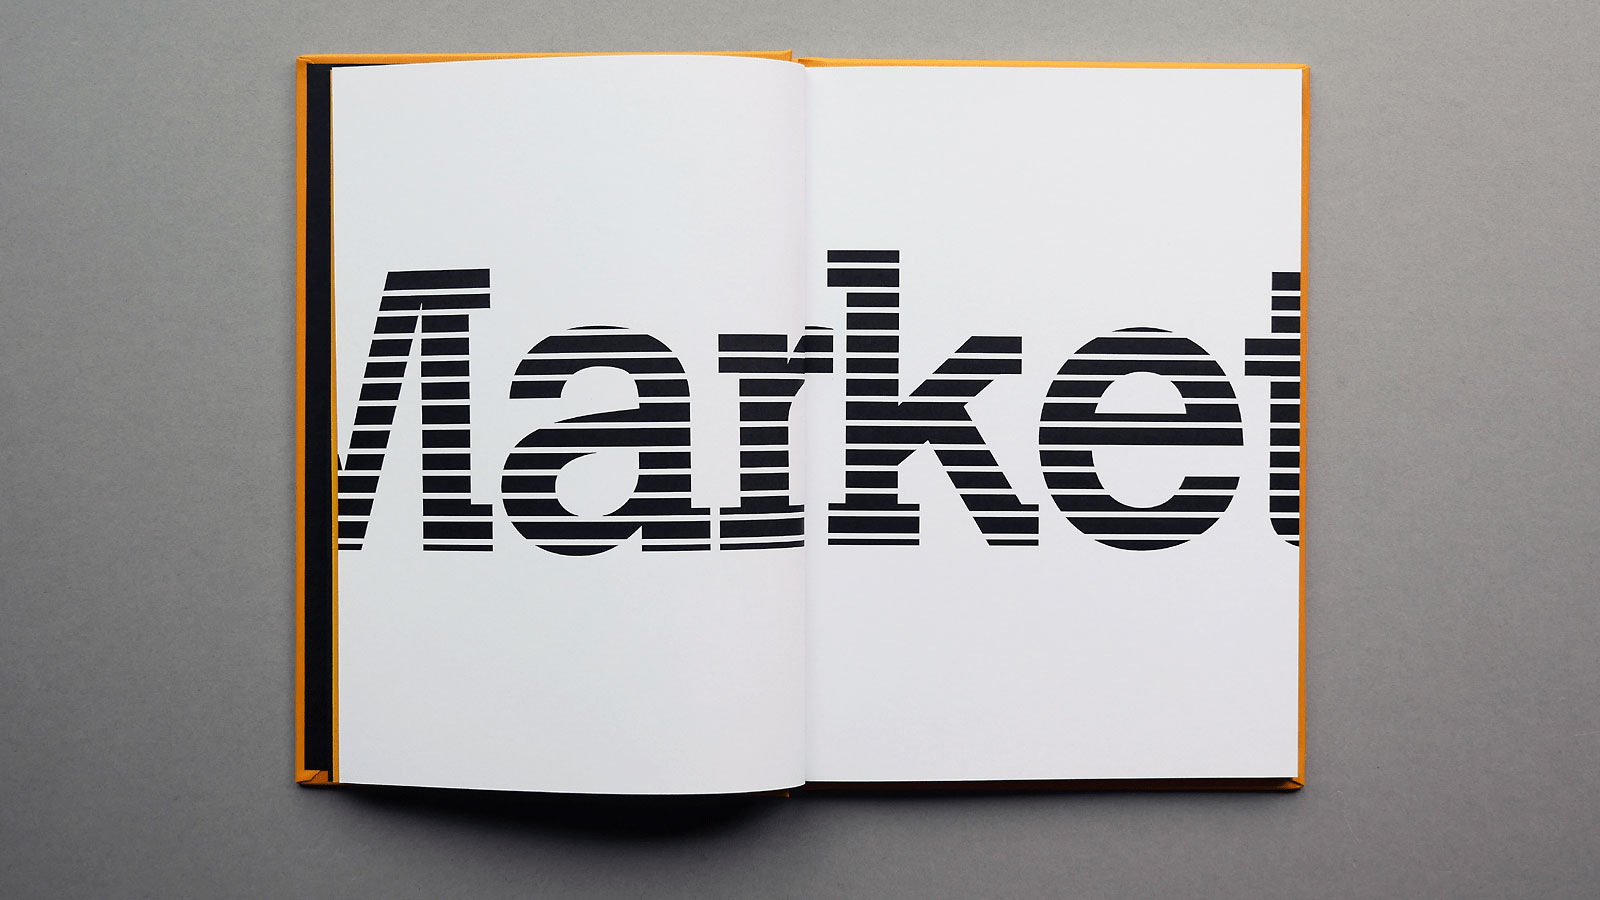 photography-design-picture-book-hard-case-bound-typography-spread-2-milton-keynes-london